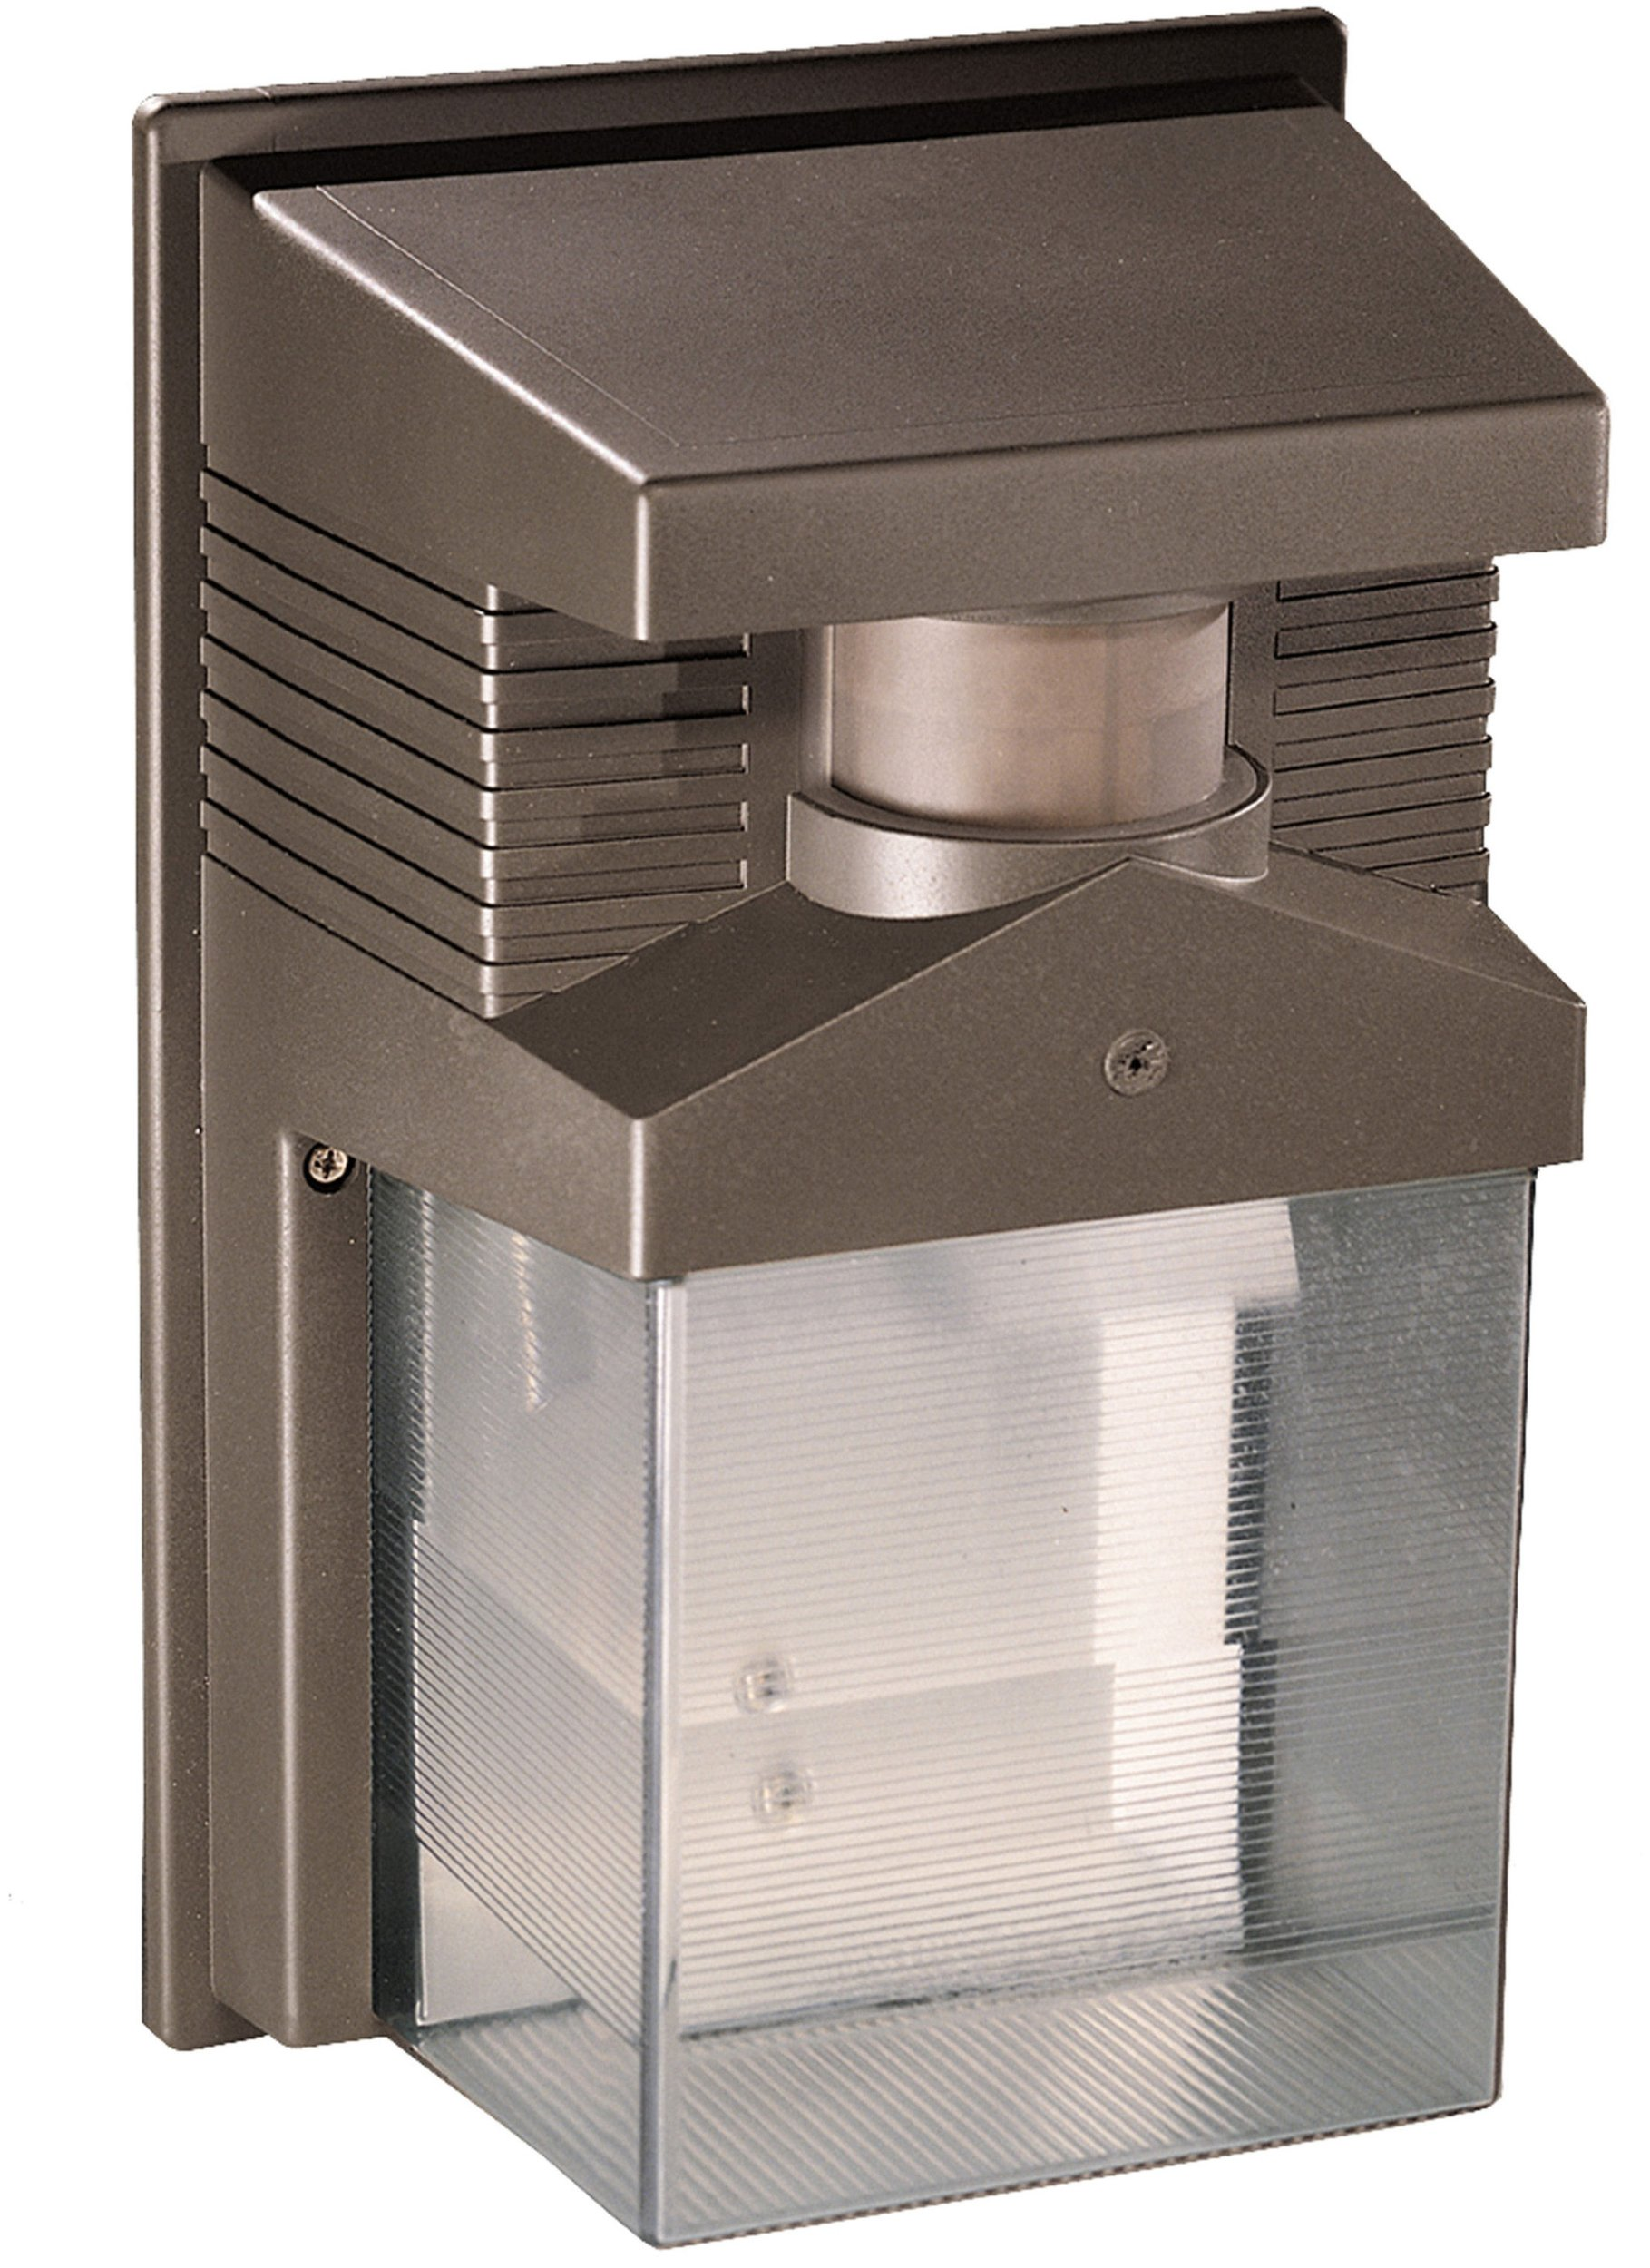 Heath/Zenith SL-5630-BZ-D 180-Degree Halogen Motion-Sensing Security Light, Bronze by Heath/Zenith